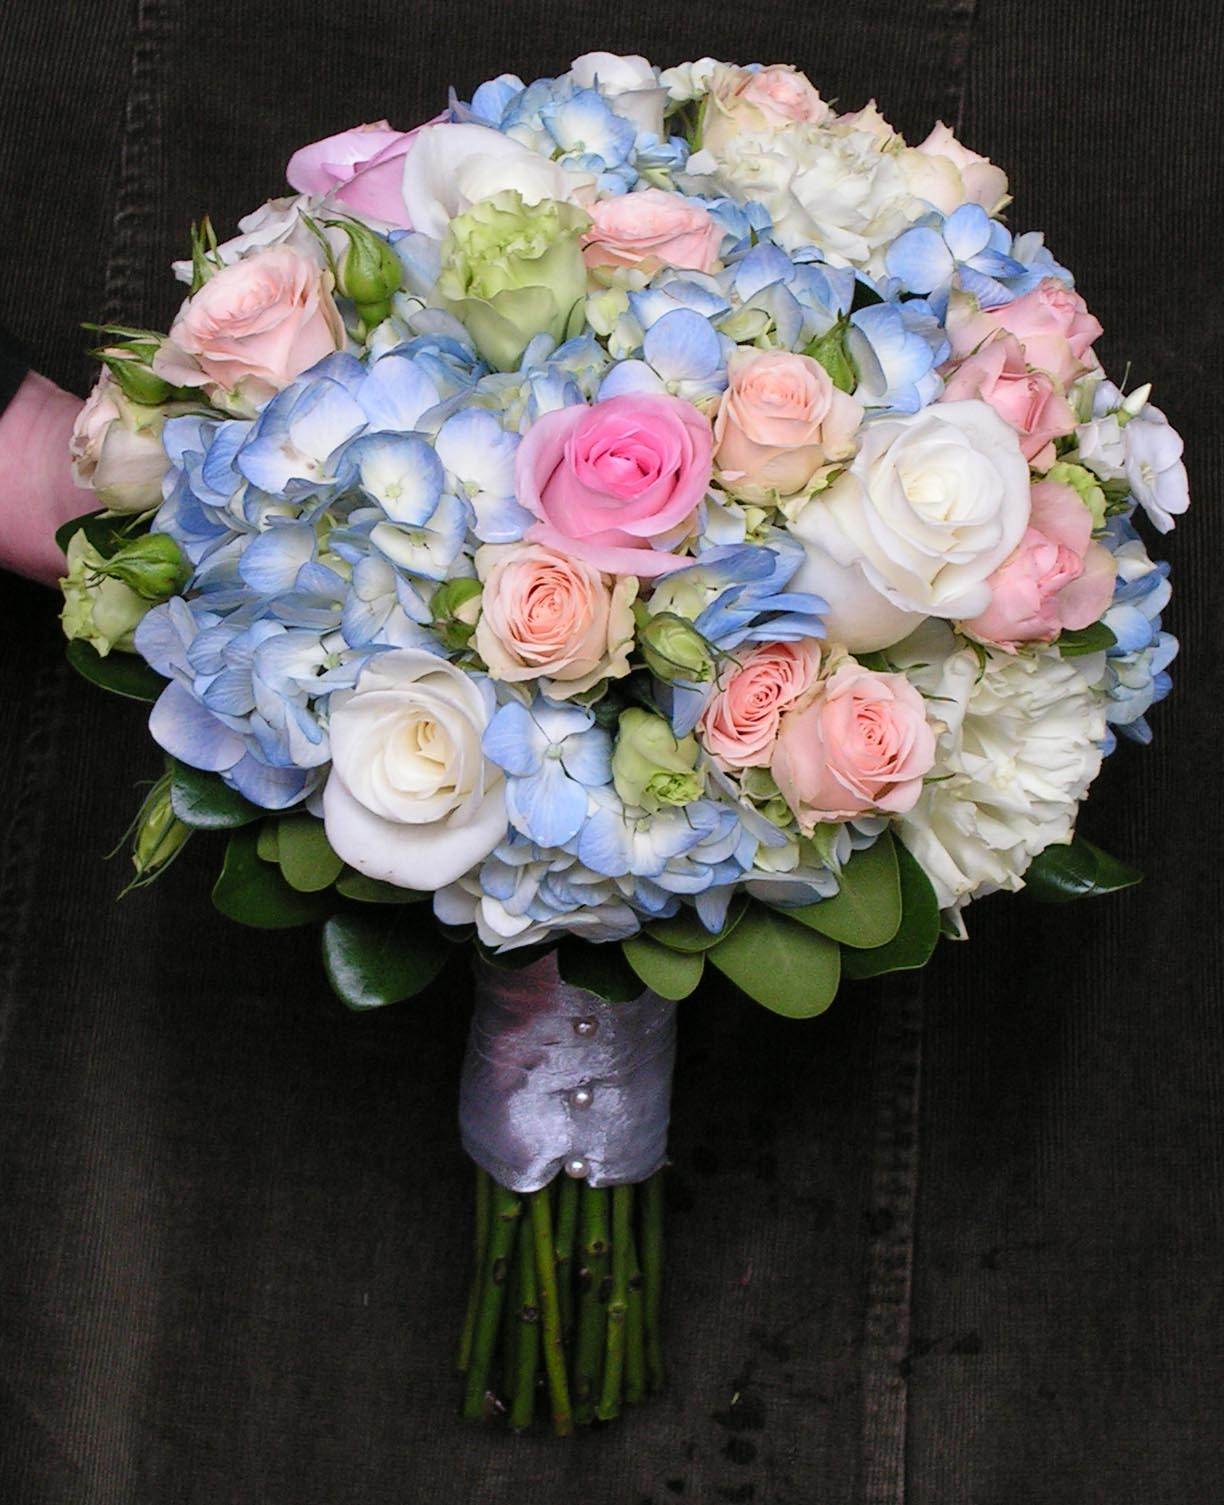 Blue Hydrangea Wedding Flowers: Pale Blue And Pink Hydrange Rose Wedding Flower Bridal